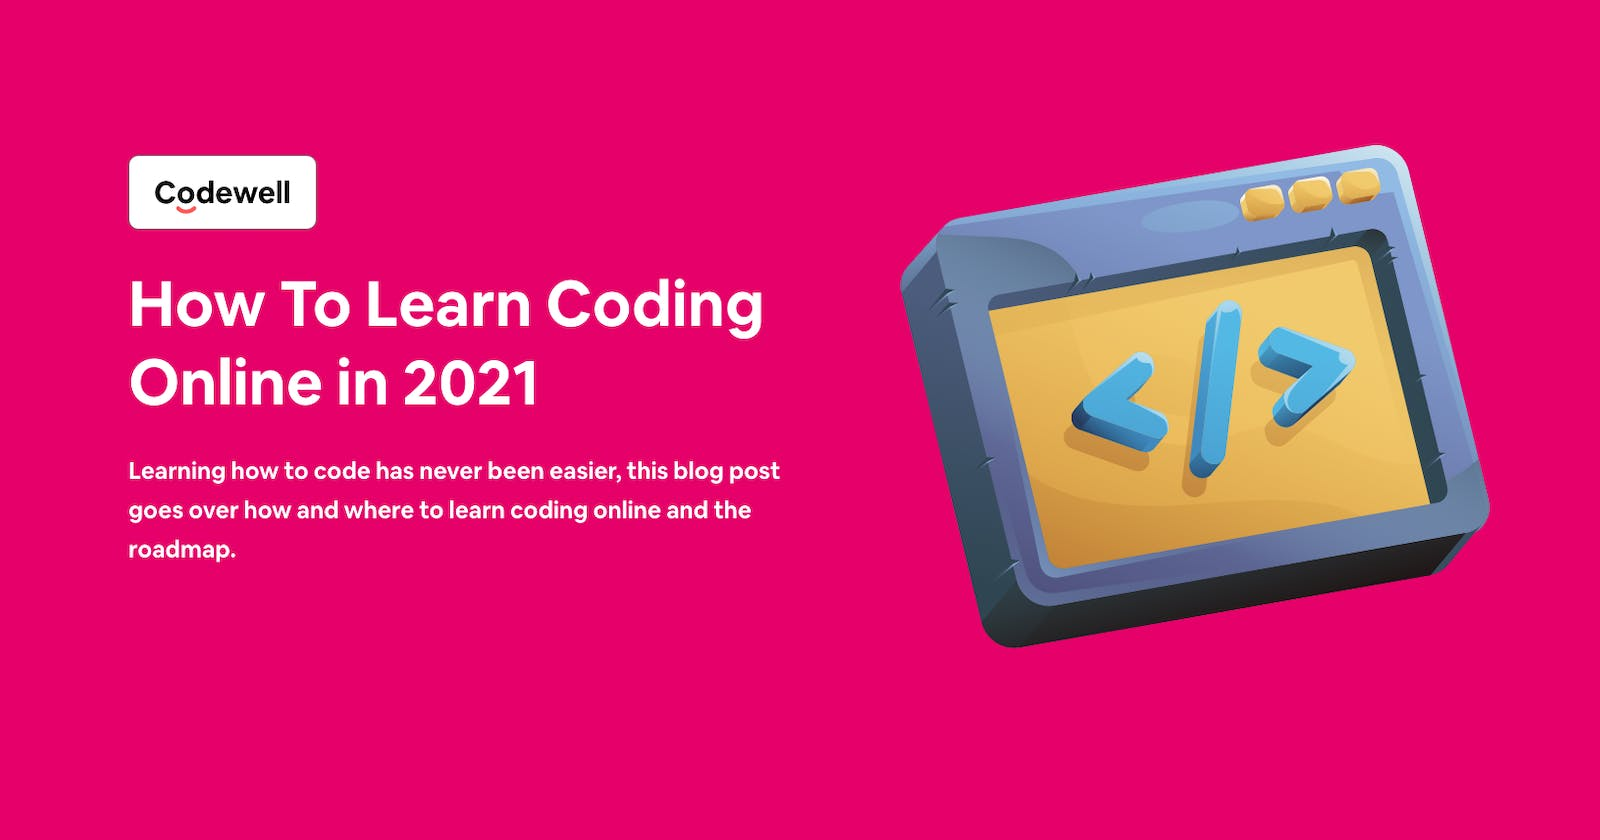 How To Learn Coding Online in 2021